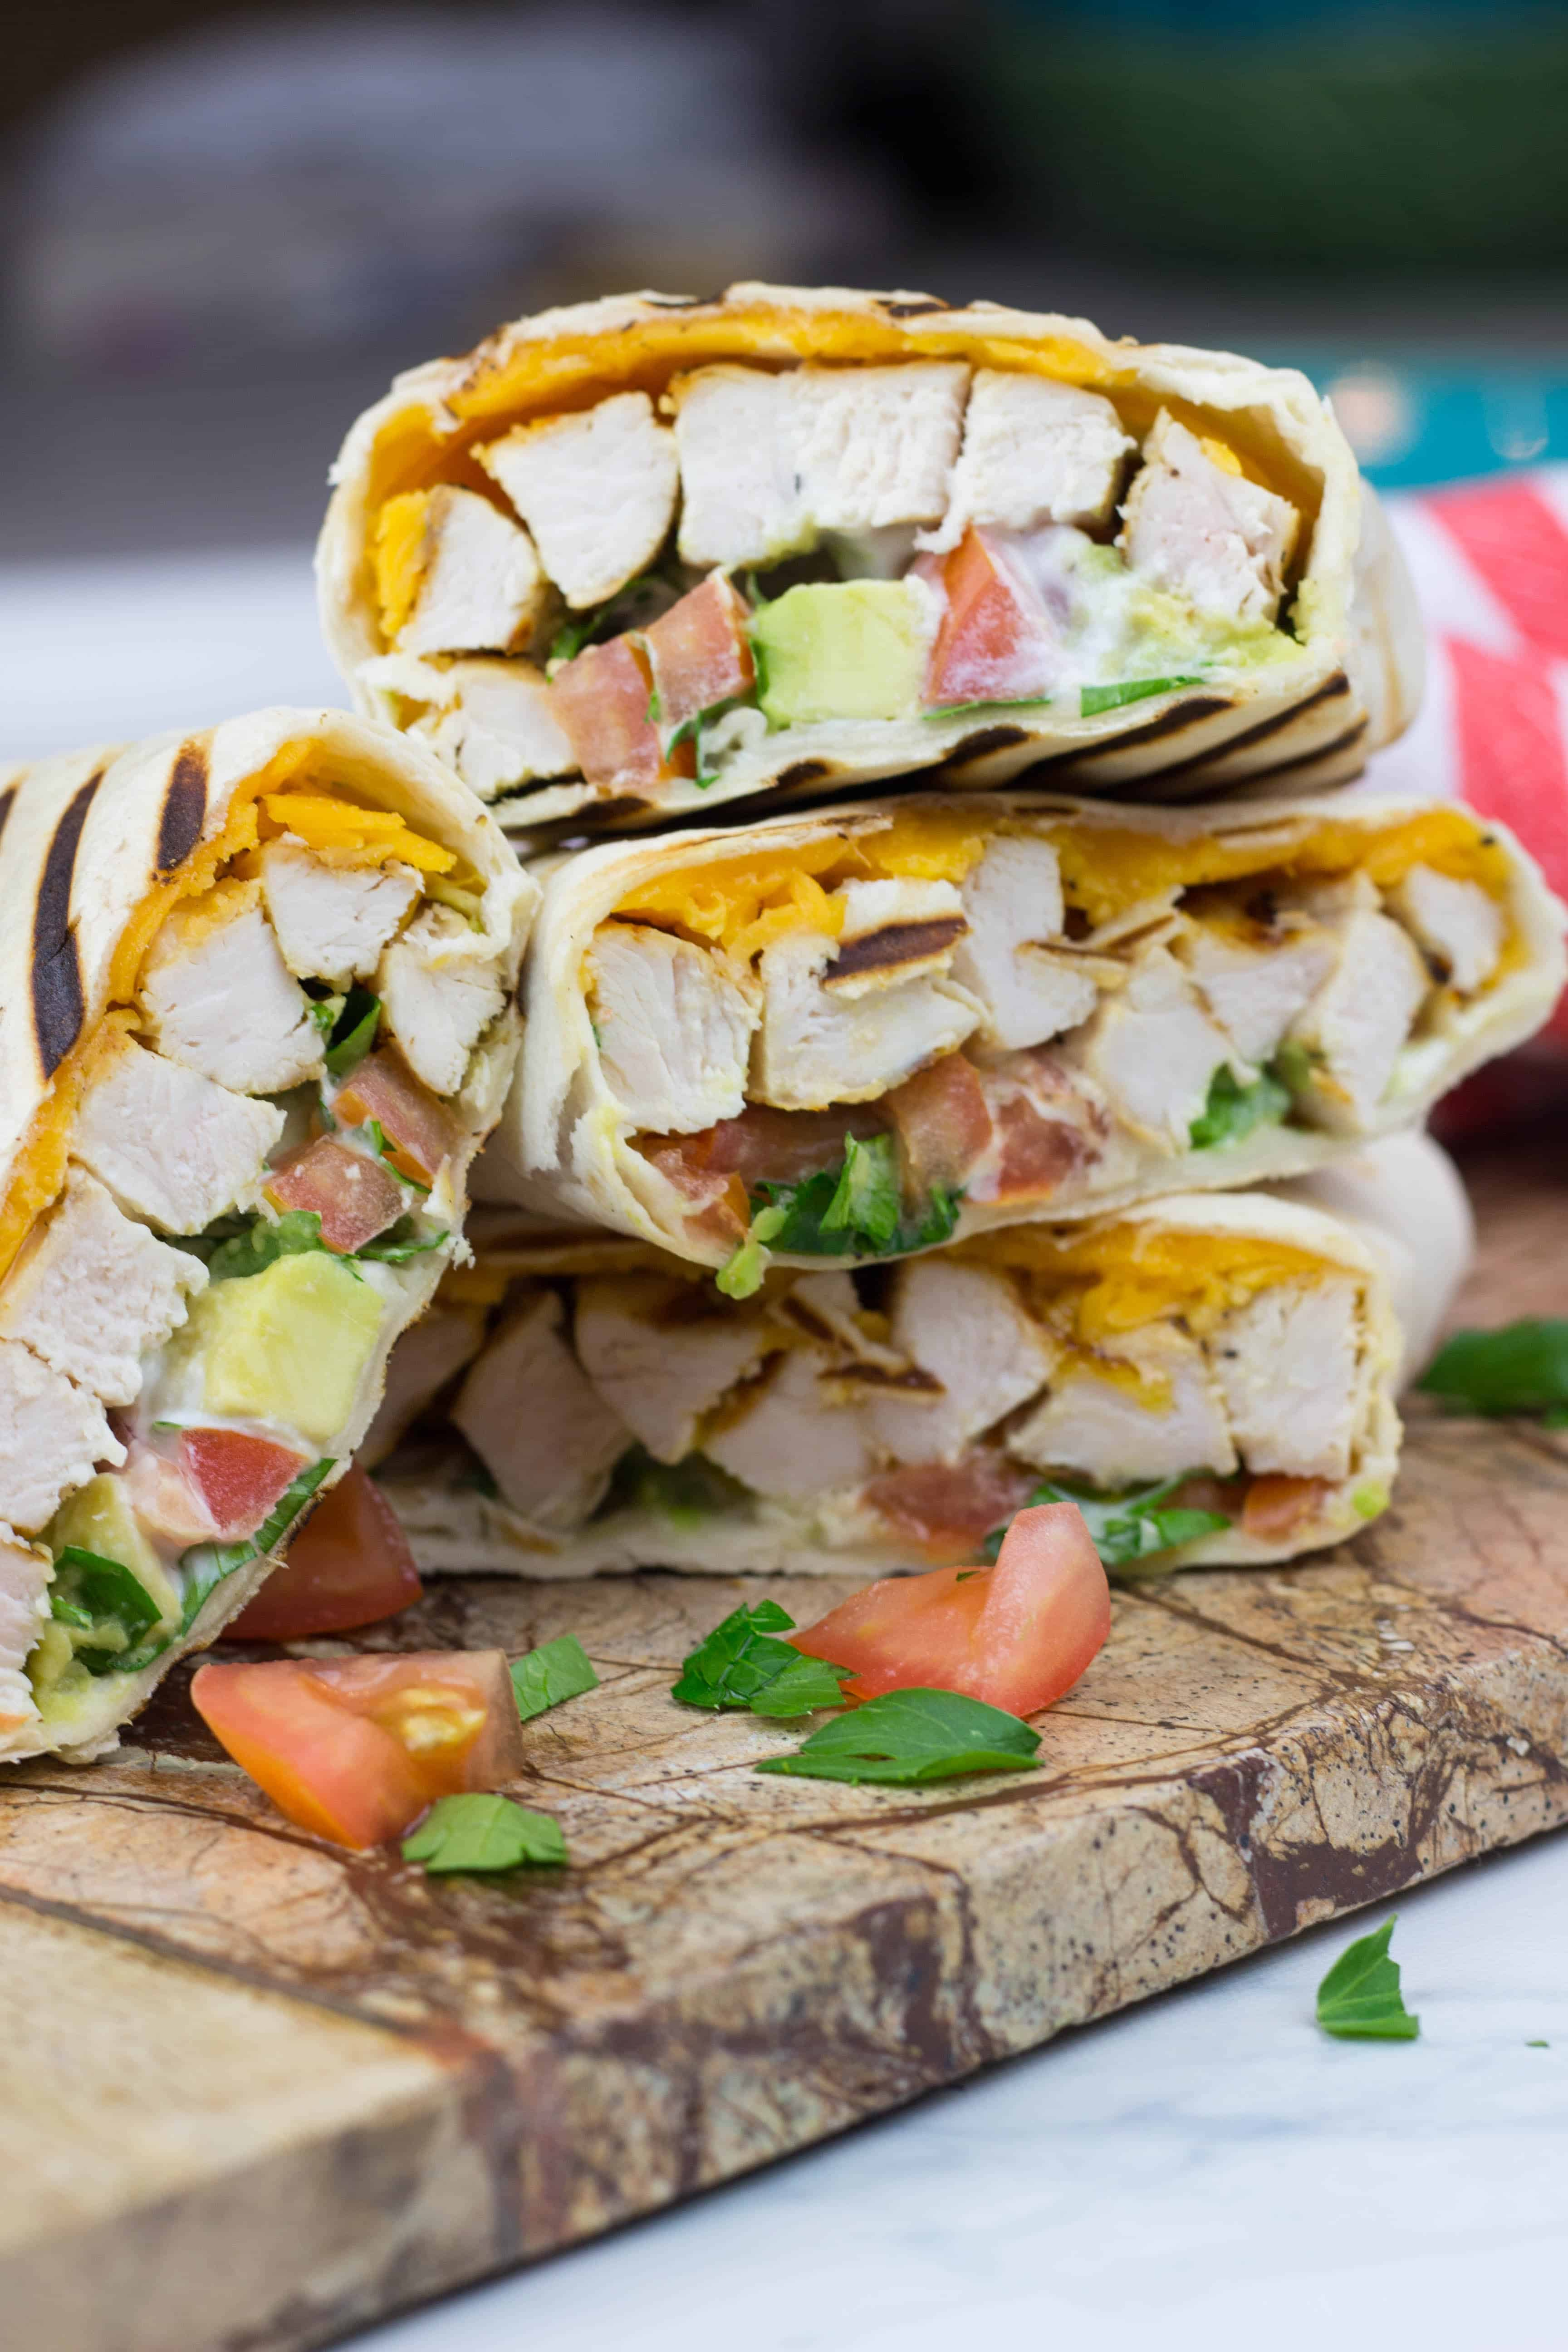 Healthy Chicken Avocado Wraps are a great lunch idea which is delicious, nutritious, and easy to make. It will take you only 10 minutes to assemble all the ingredients together to enjoy your healthy lunch.